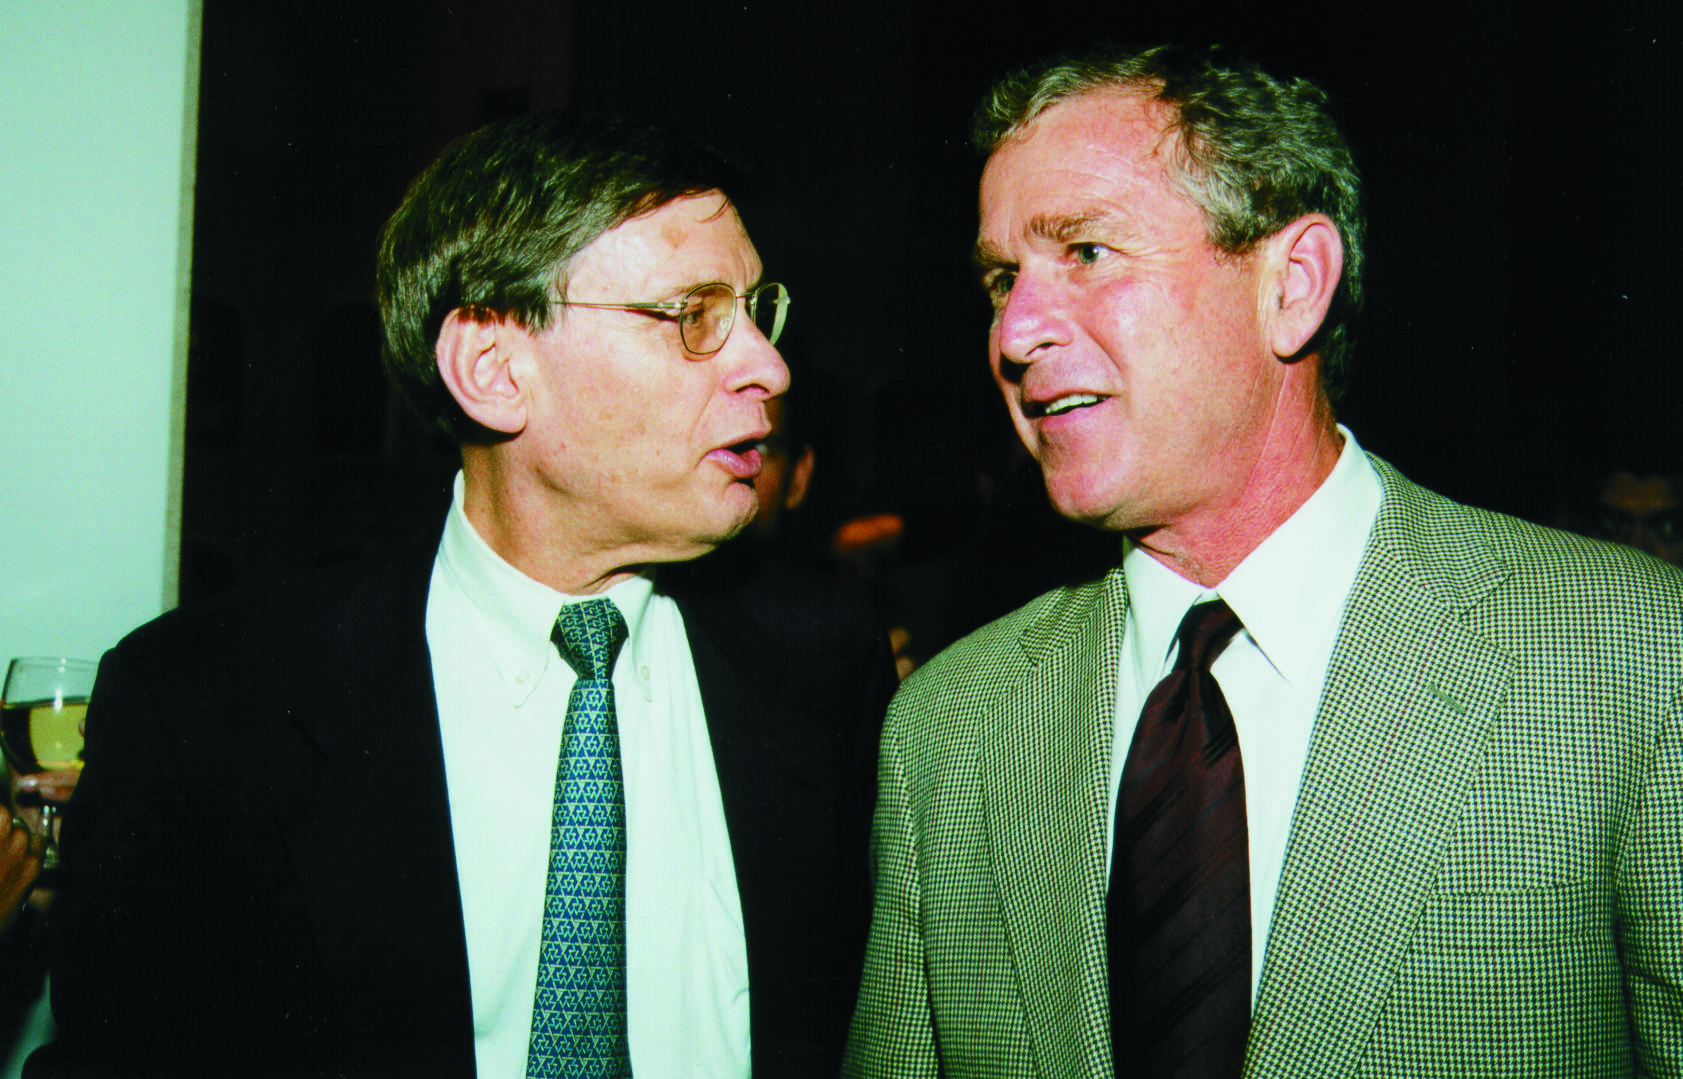 Bud Selig pictured above with former President George W. Bush. (National Baseball Hall of Fame)